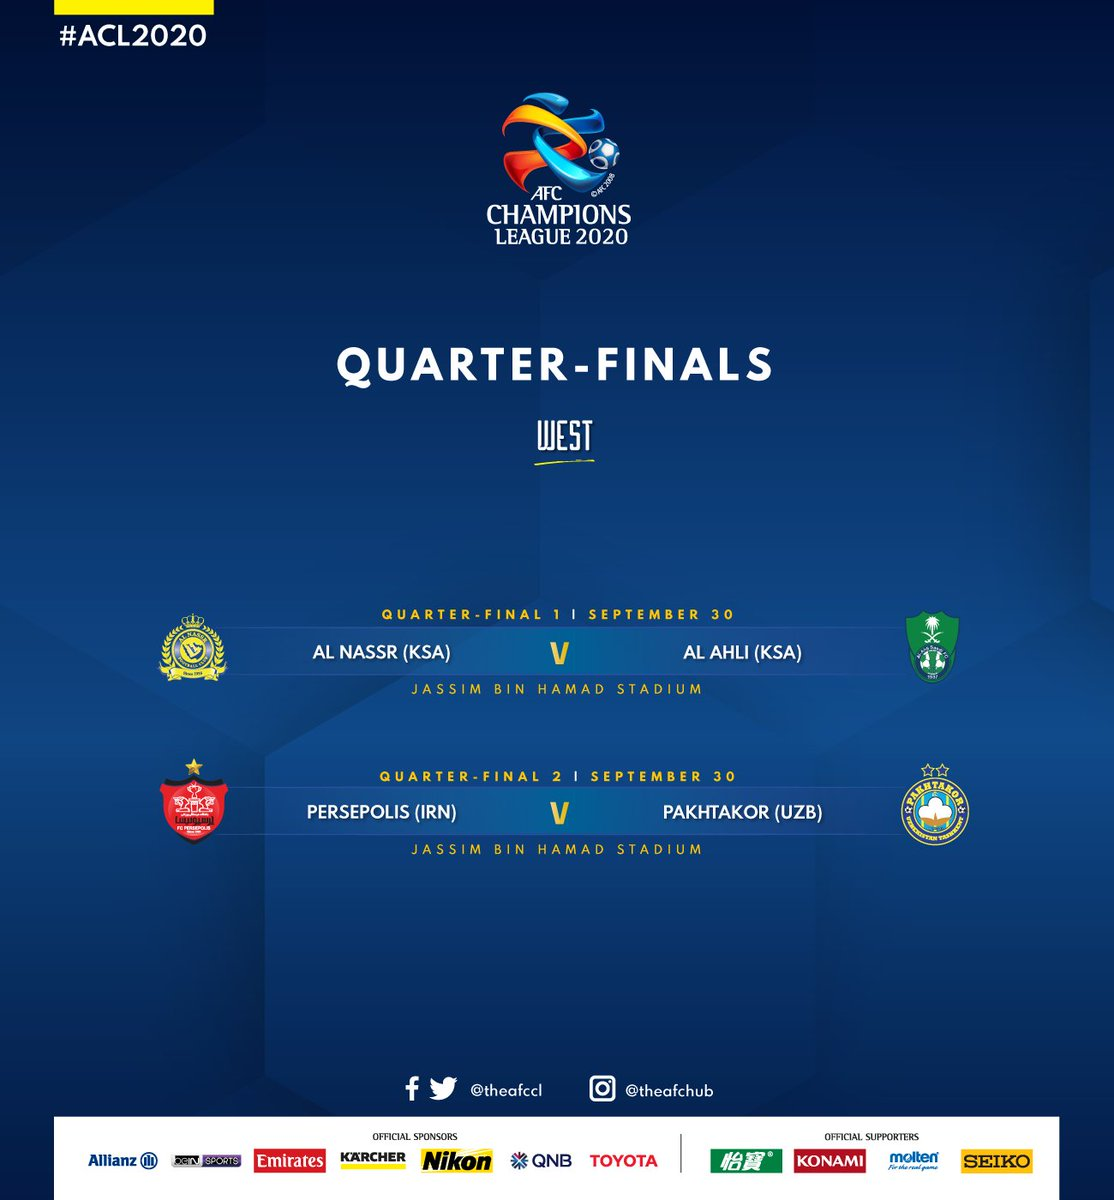 🤩  We are certainly in for a treat!  Which match are you most looking forward to see?  #ACL2020 https://t.co/rJBkl6bch0